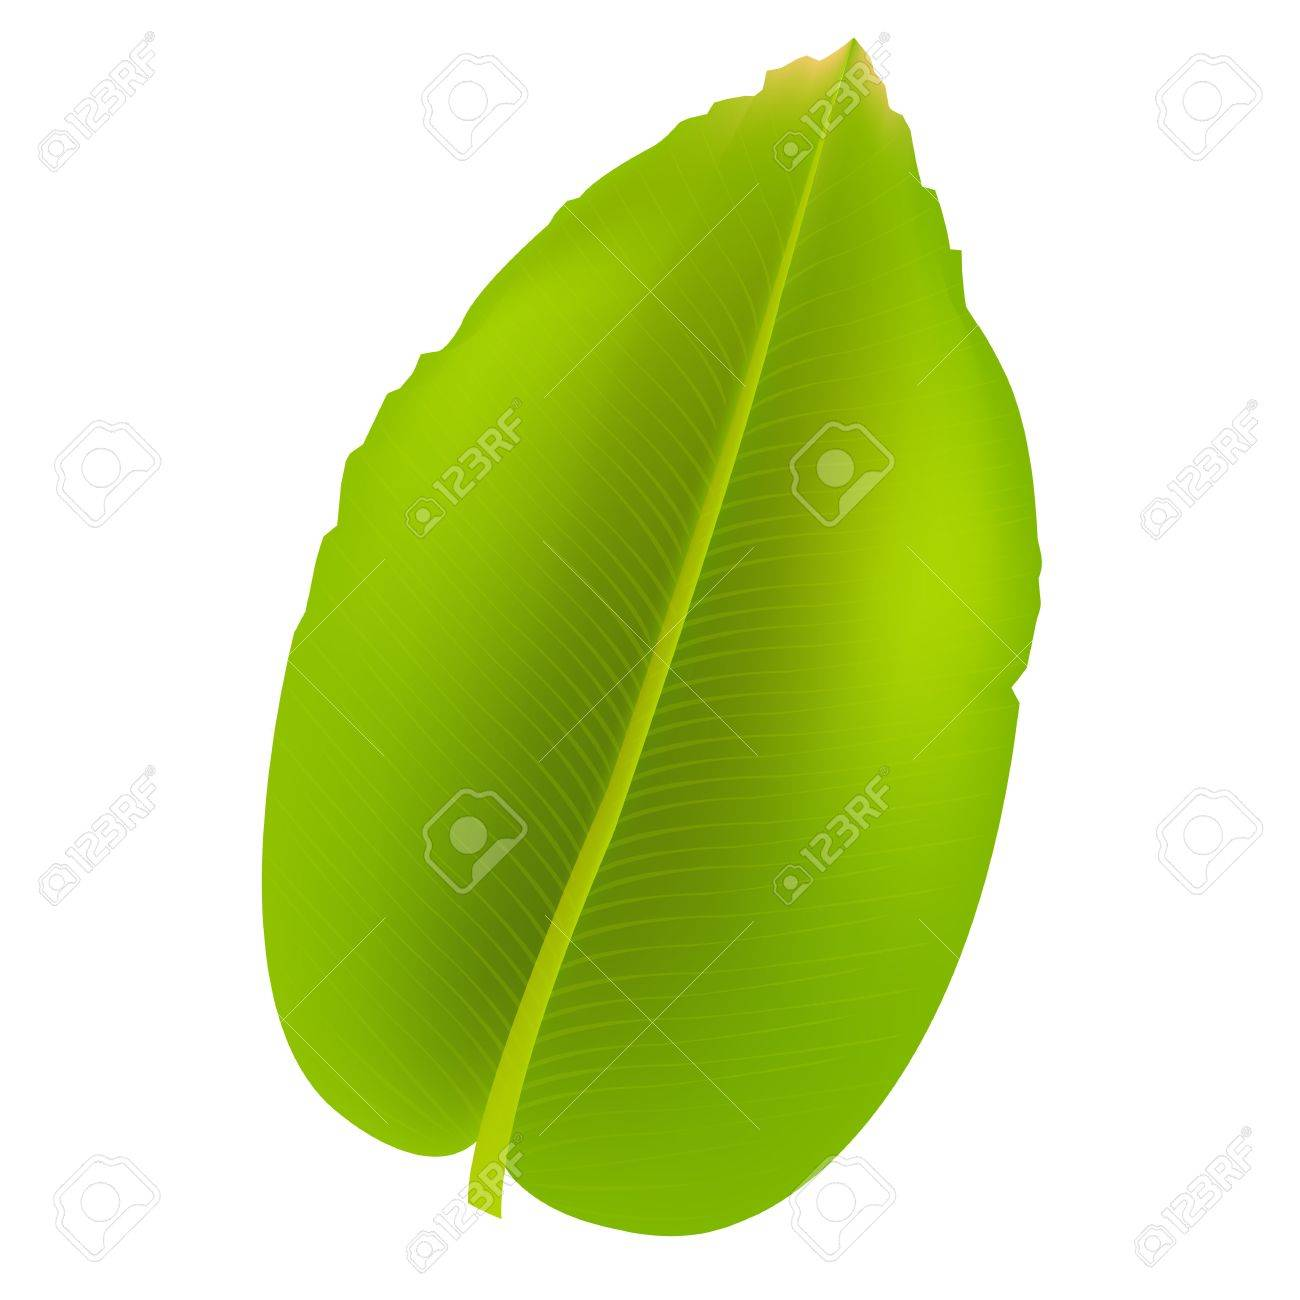 Banana Leaf, Isolated On White Background Stock Vector - 10394787